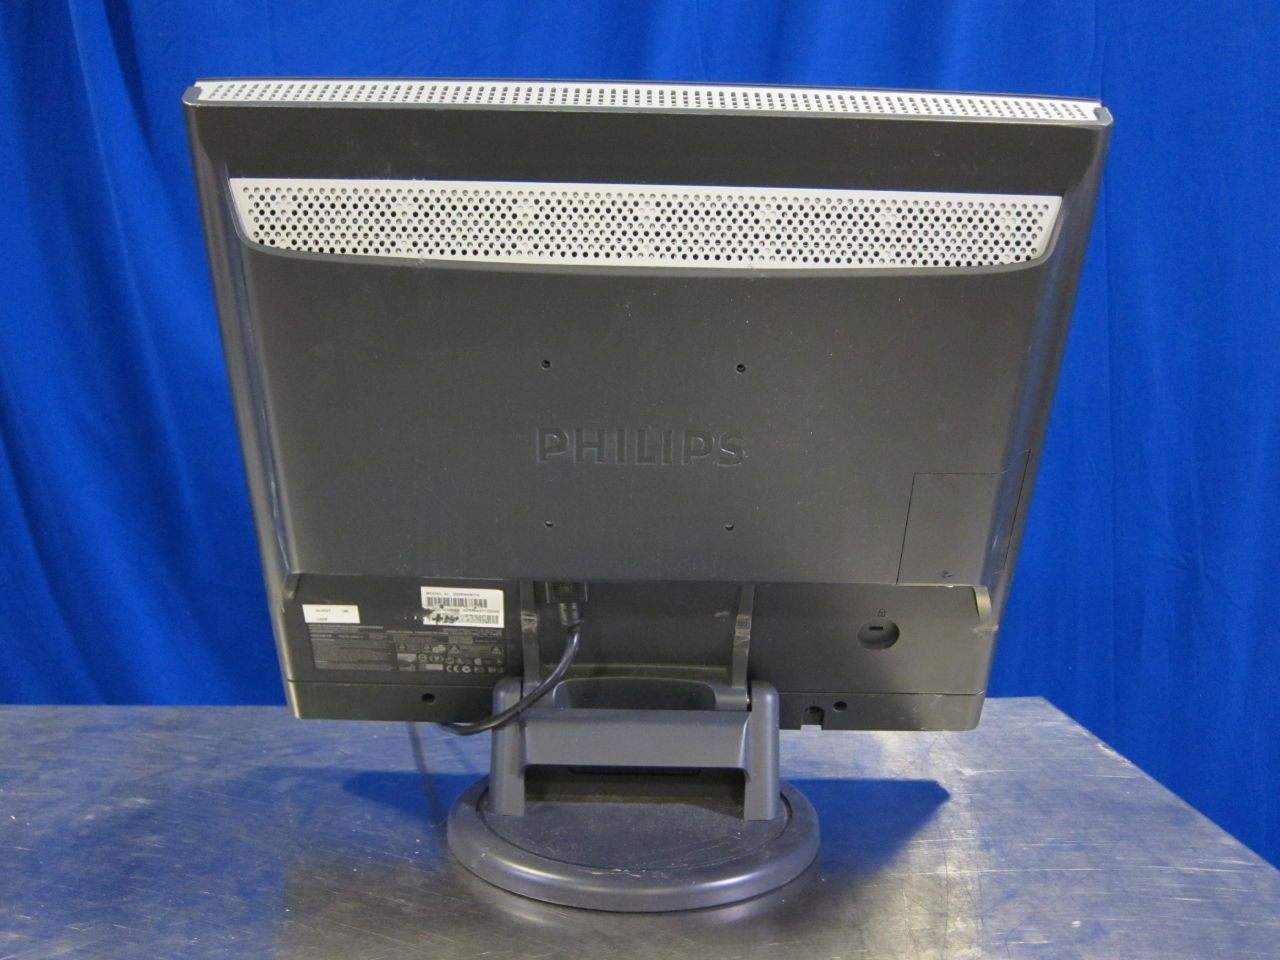 PHILIPS Brilliance 200P Display Monitor